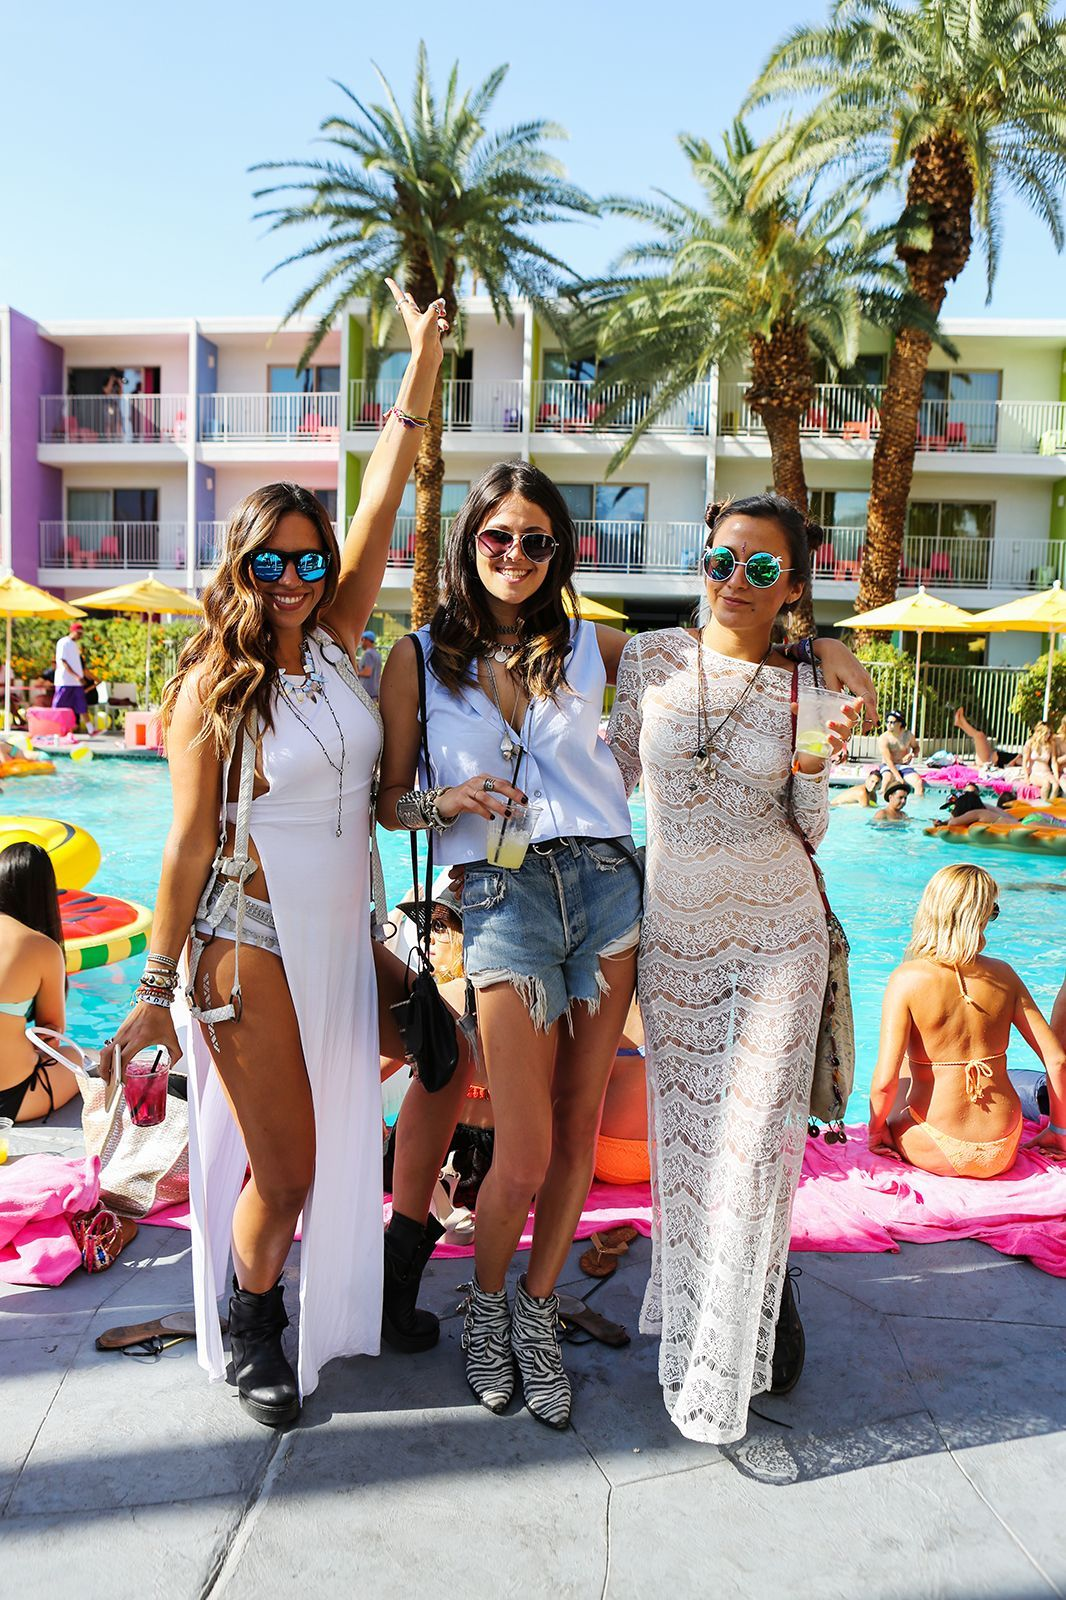 30 Pool Party Outfits From Coachella\u0027s Best Bash refinery29 http//www.